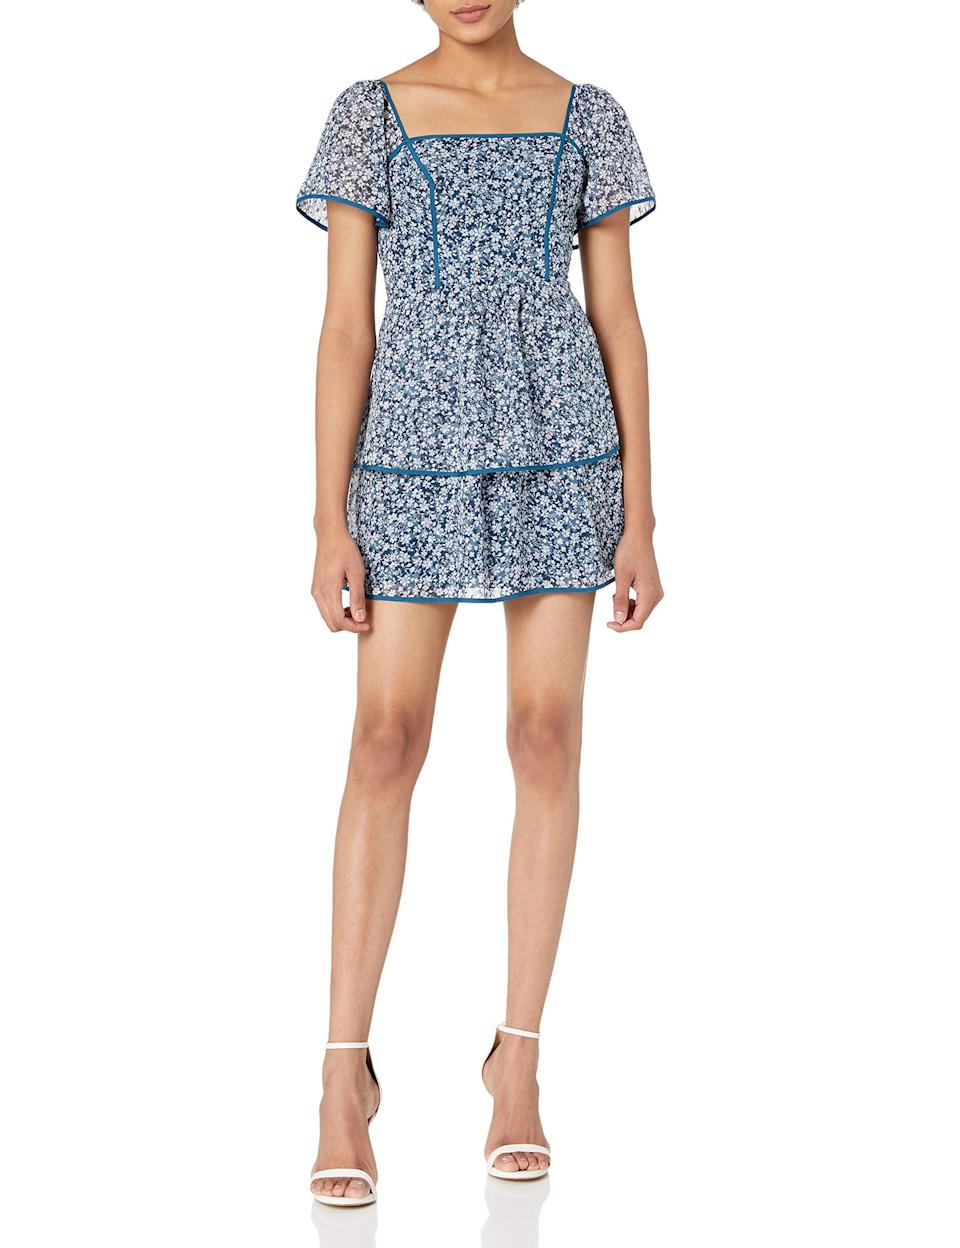 """<br><br><strong>Ali + Jay</strong> A-Line Dress, $, available at <a href=""""https://amzn.to/2XzJlqQ"""" rel=""""nofollow noopener"""" target=""""_blank"""" data-ylk=""""slk:Amazon Fashion"""" class=""""link rapid-noclick-resp"""">Amazon Fashion</a>"""